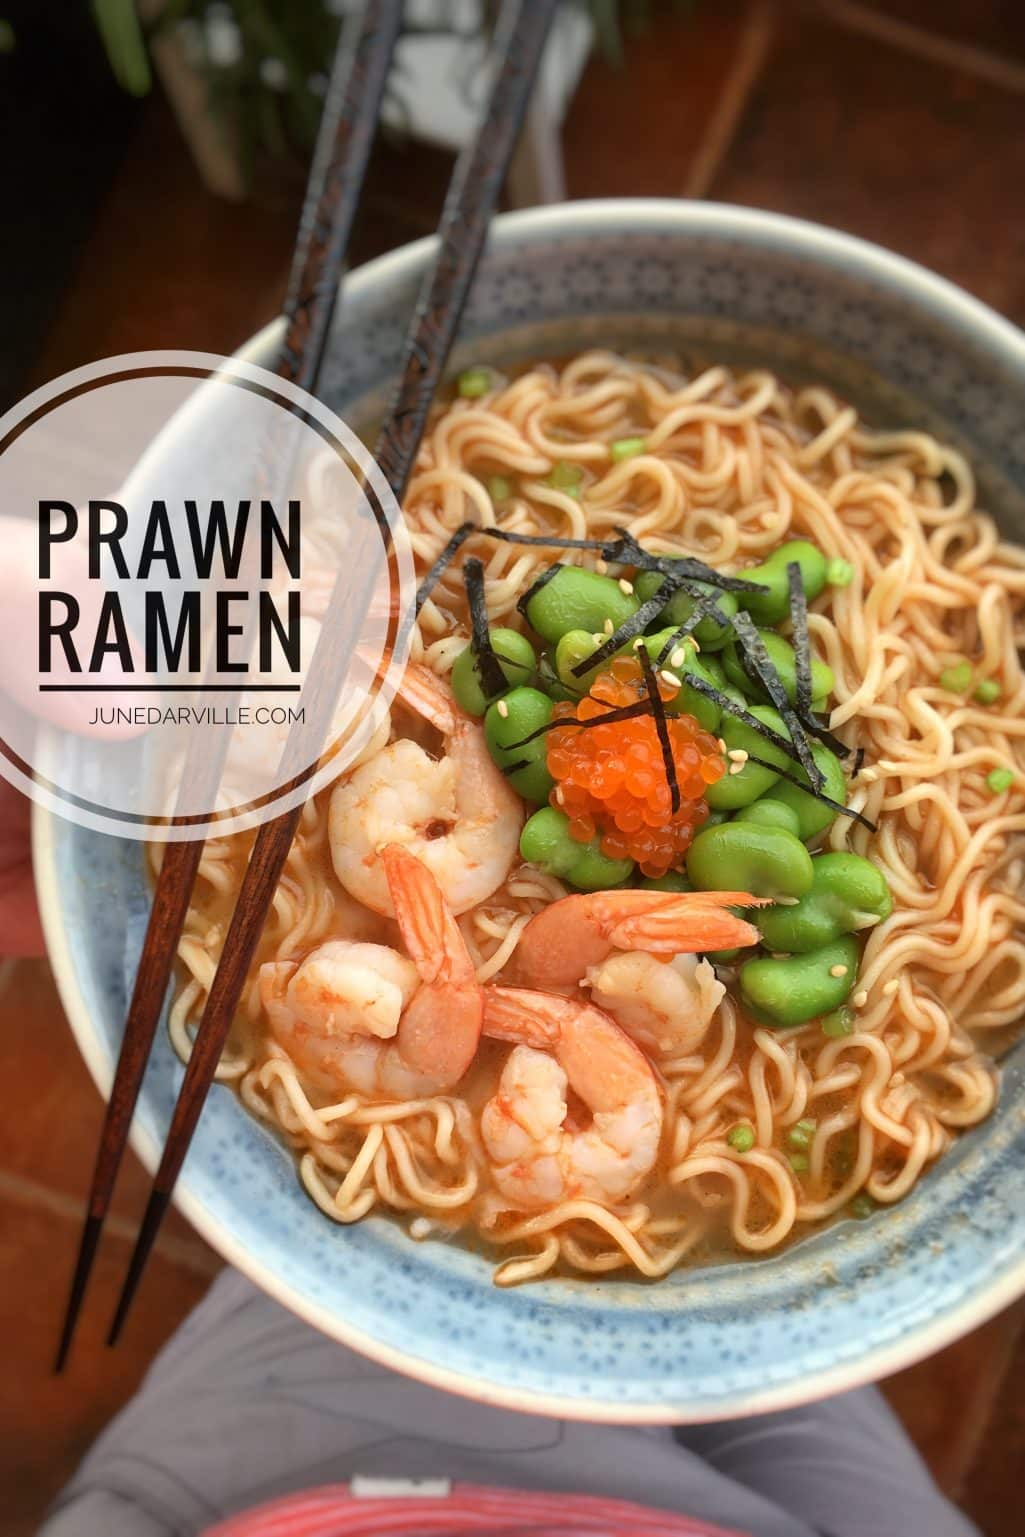 kitchen aide stand mixer remodel works bath & ramen soup recipe with prawns & edamame | simple. tasty. good.